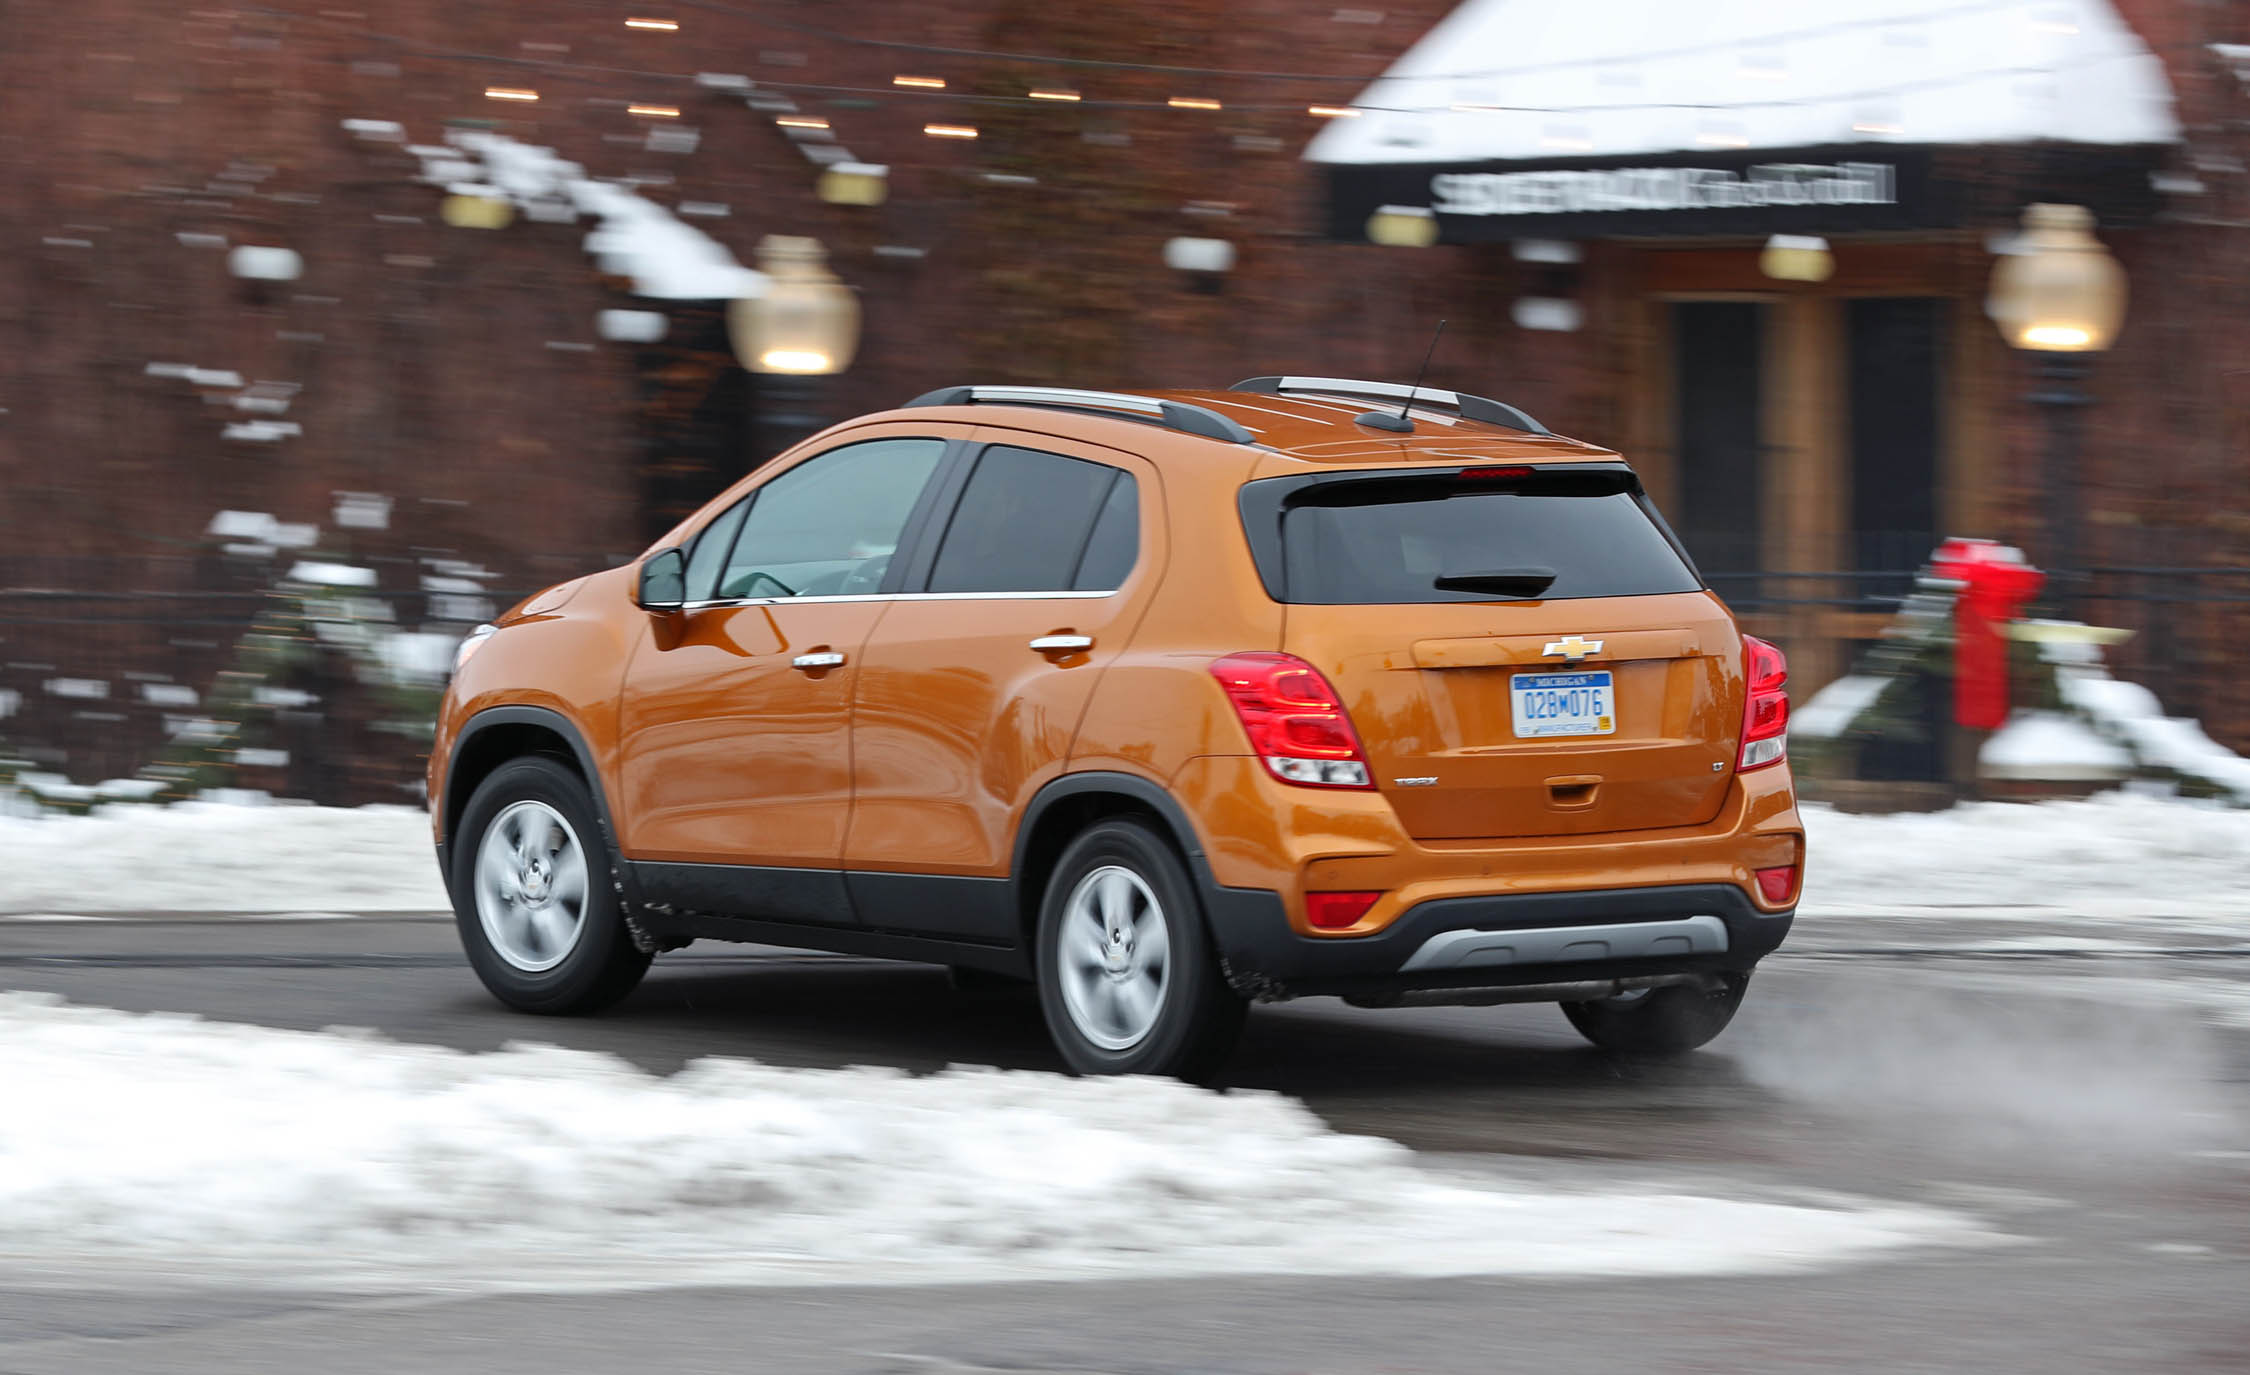 2017 Chevrolet Trax Test Drive Rear And Side Preview (View 8 of 47)